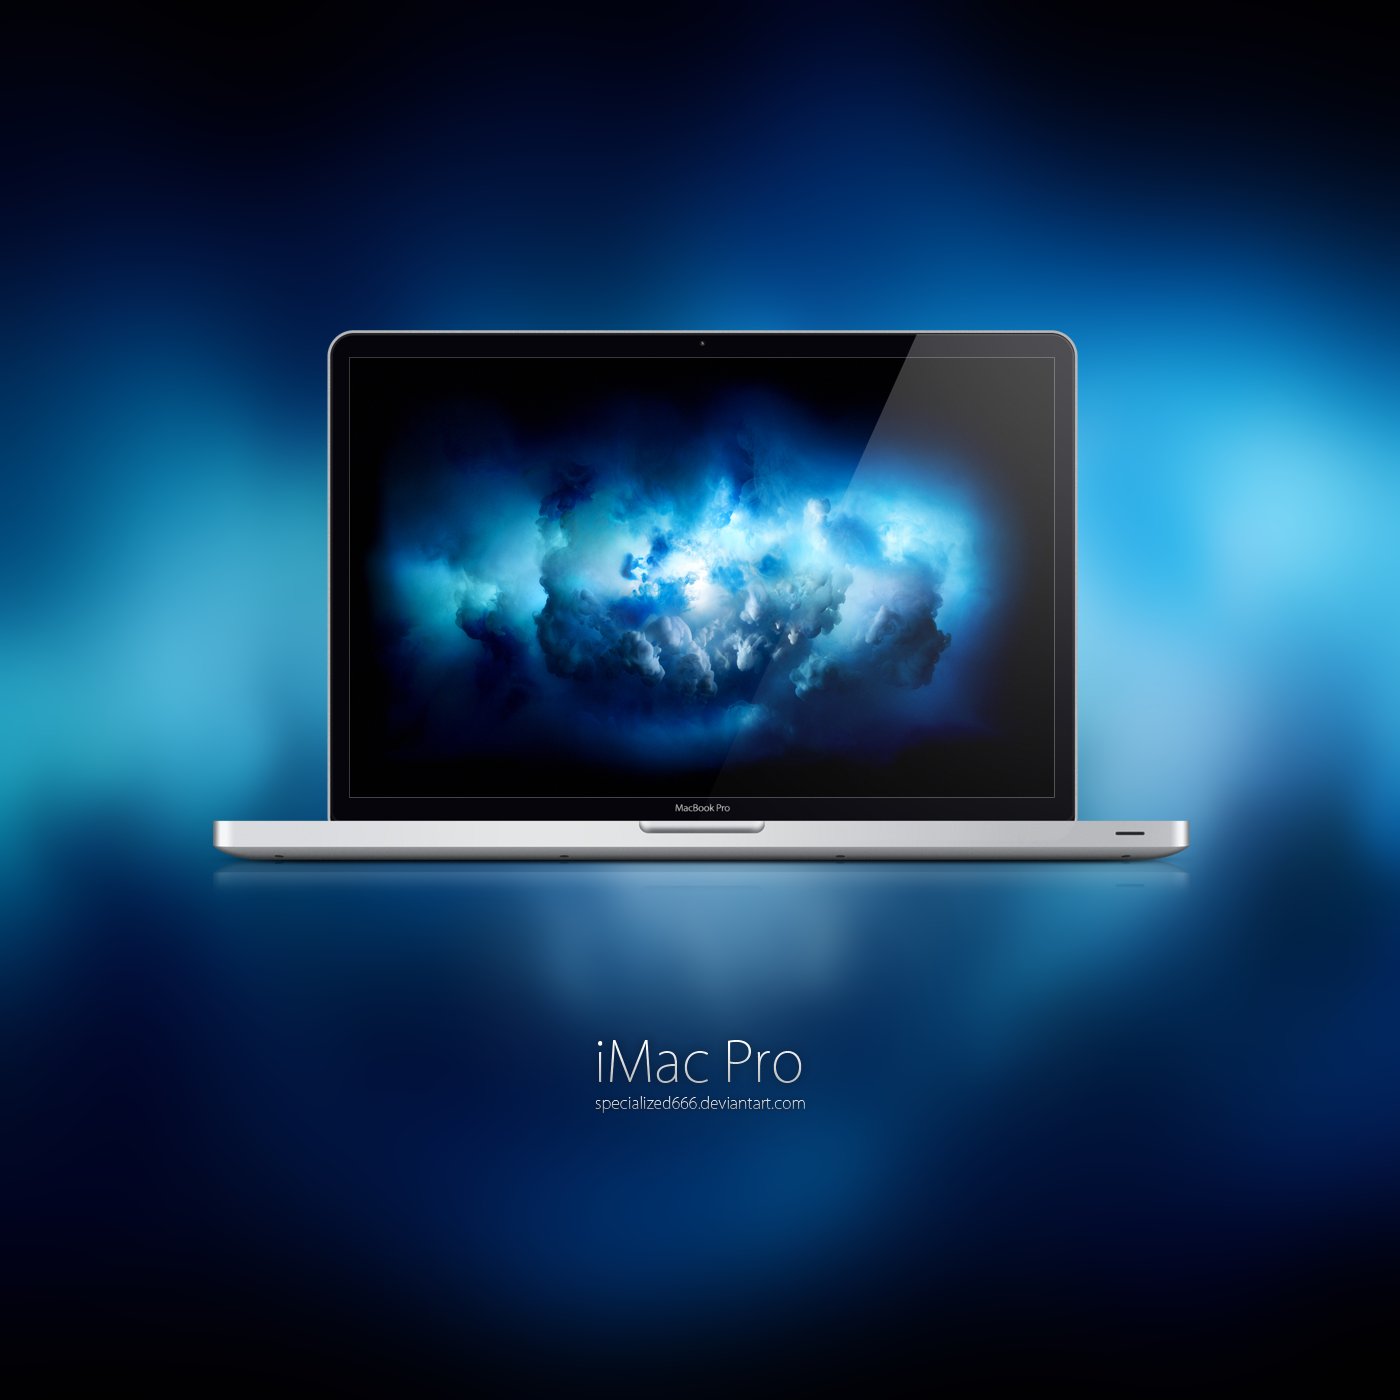 iMac Pro Wallpaper by specialized666